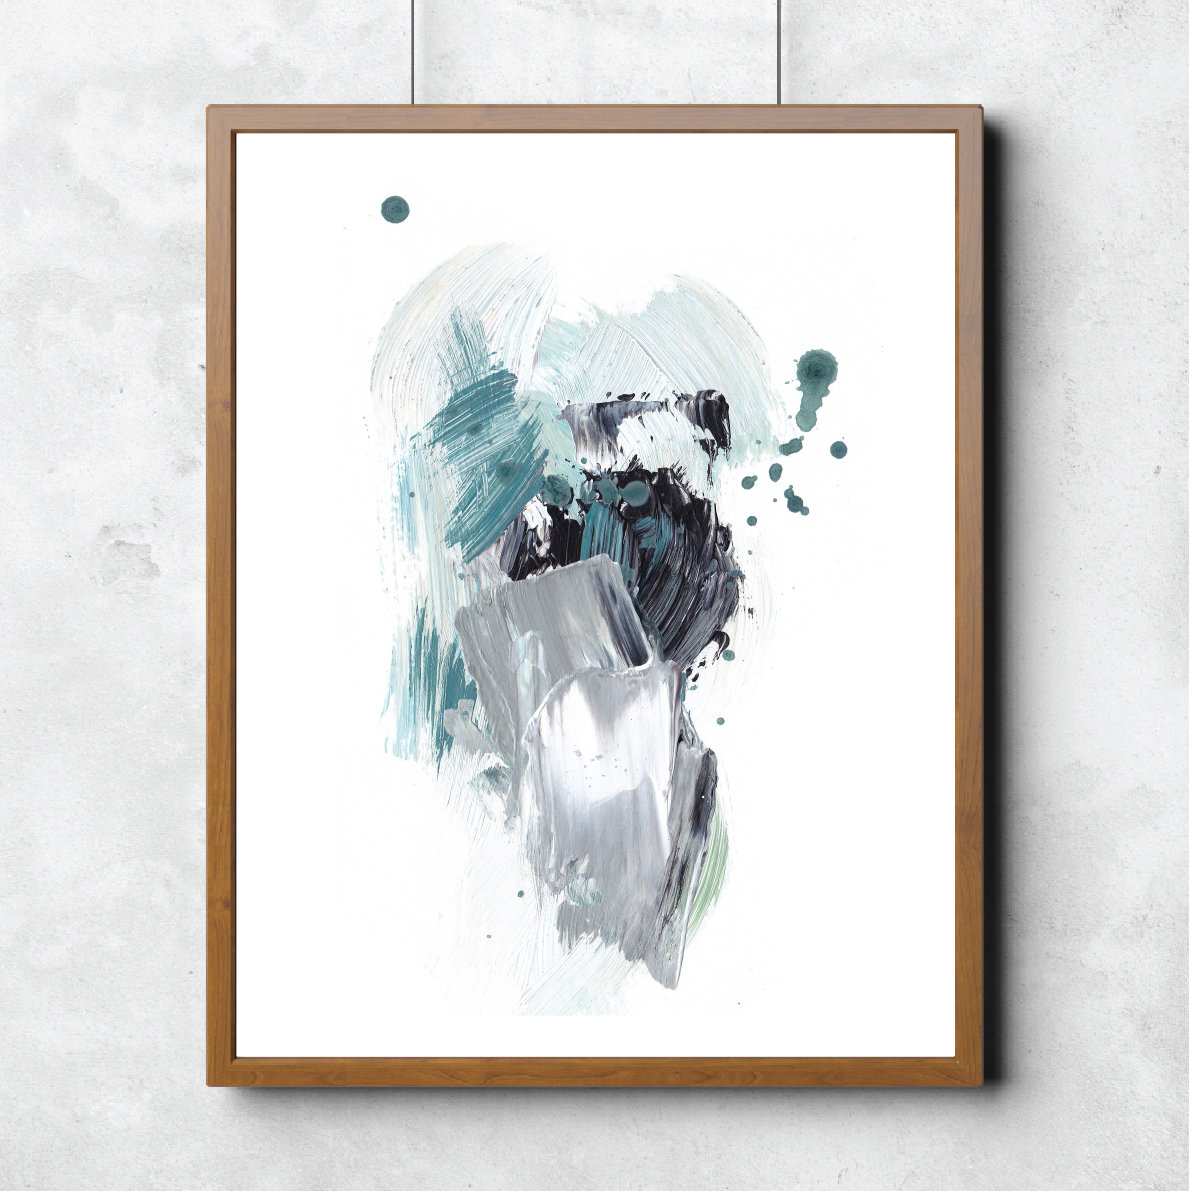 This abstract art print features one of Monja's latest works, and are now available as either an A4 or A3 print for your home.